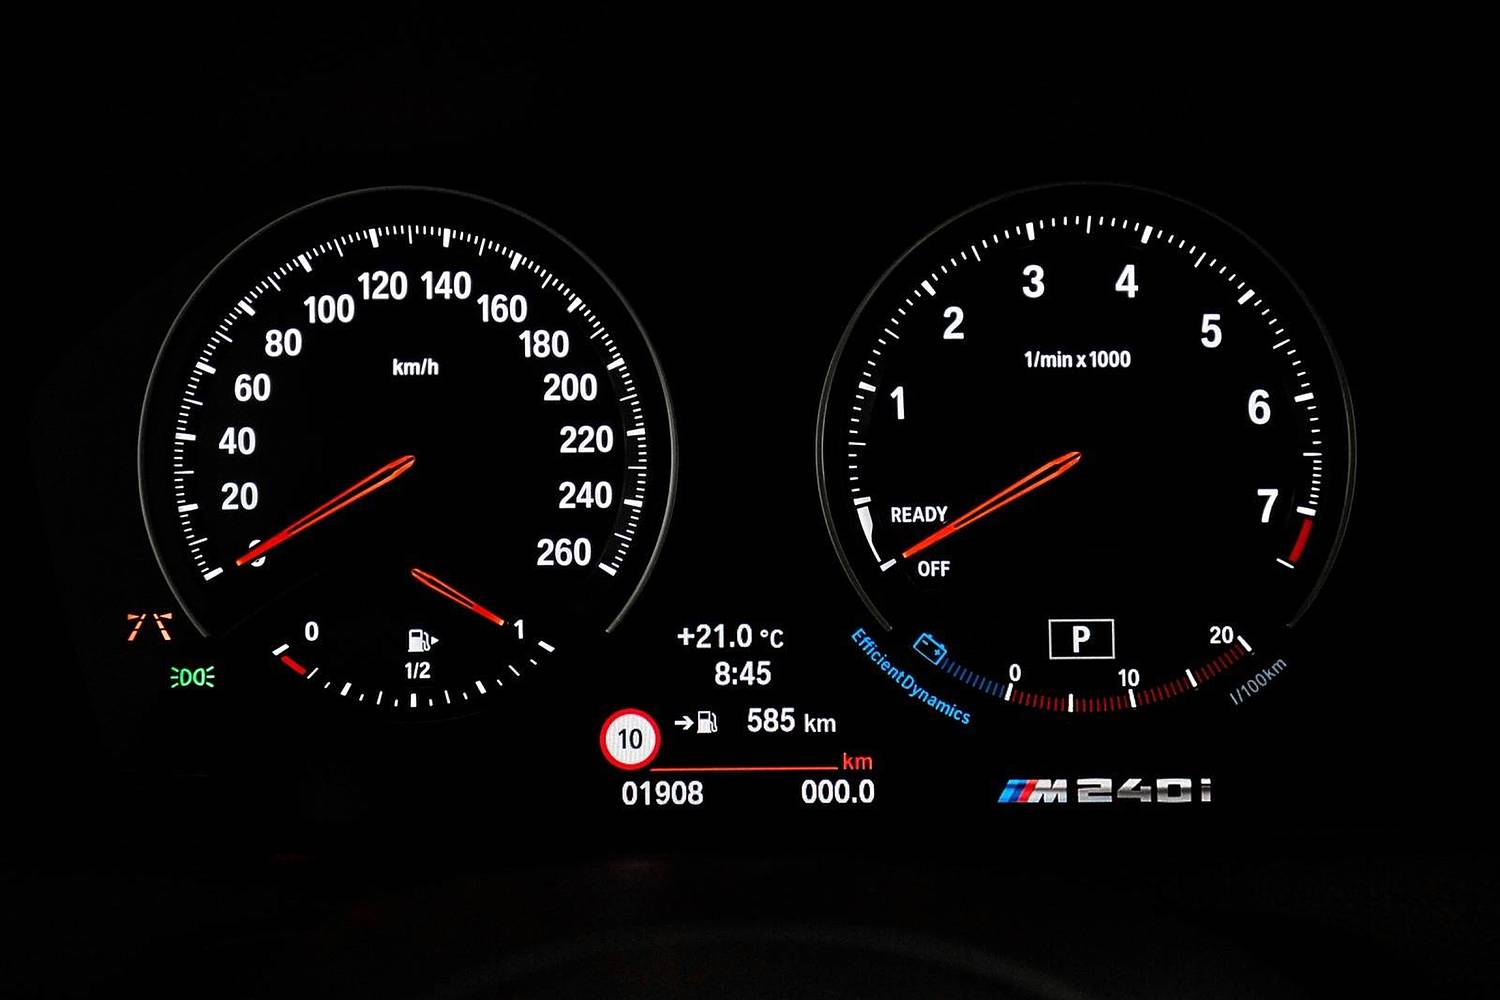 2018 BMW 2 Series M240i xDrive Coupe Gauge Cluster